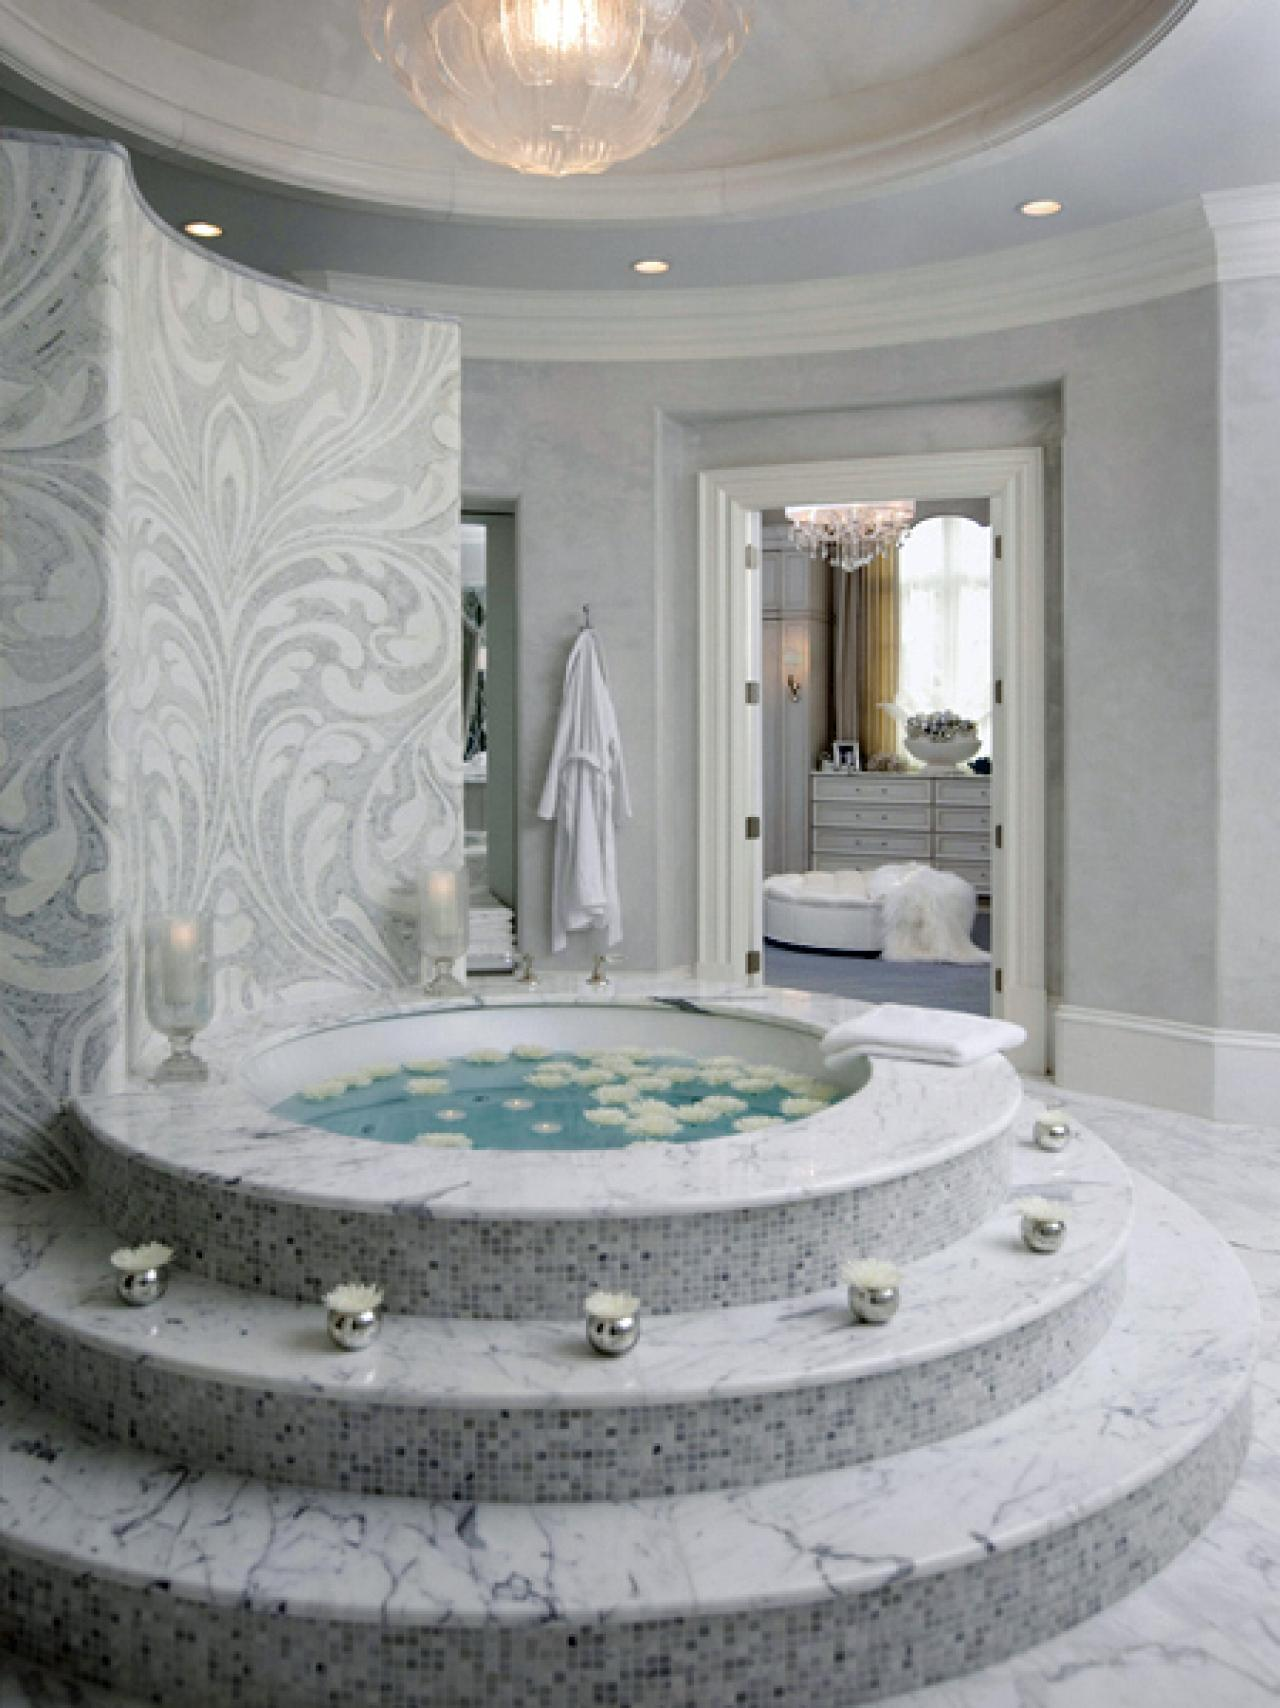 Bathroom Ideas White Tub : Two person bathtubs pictures ideas tips from hgtv